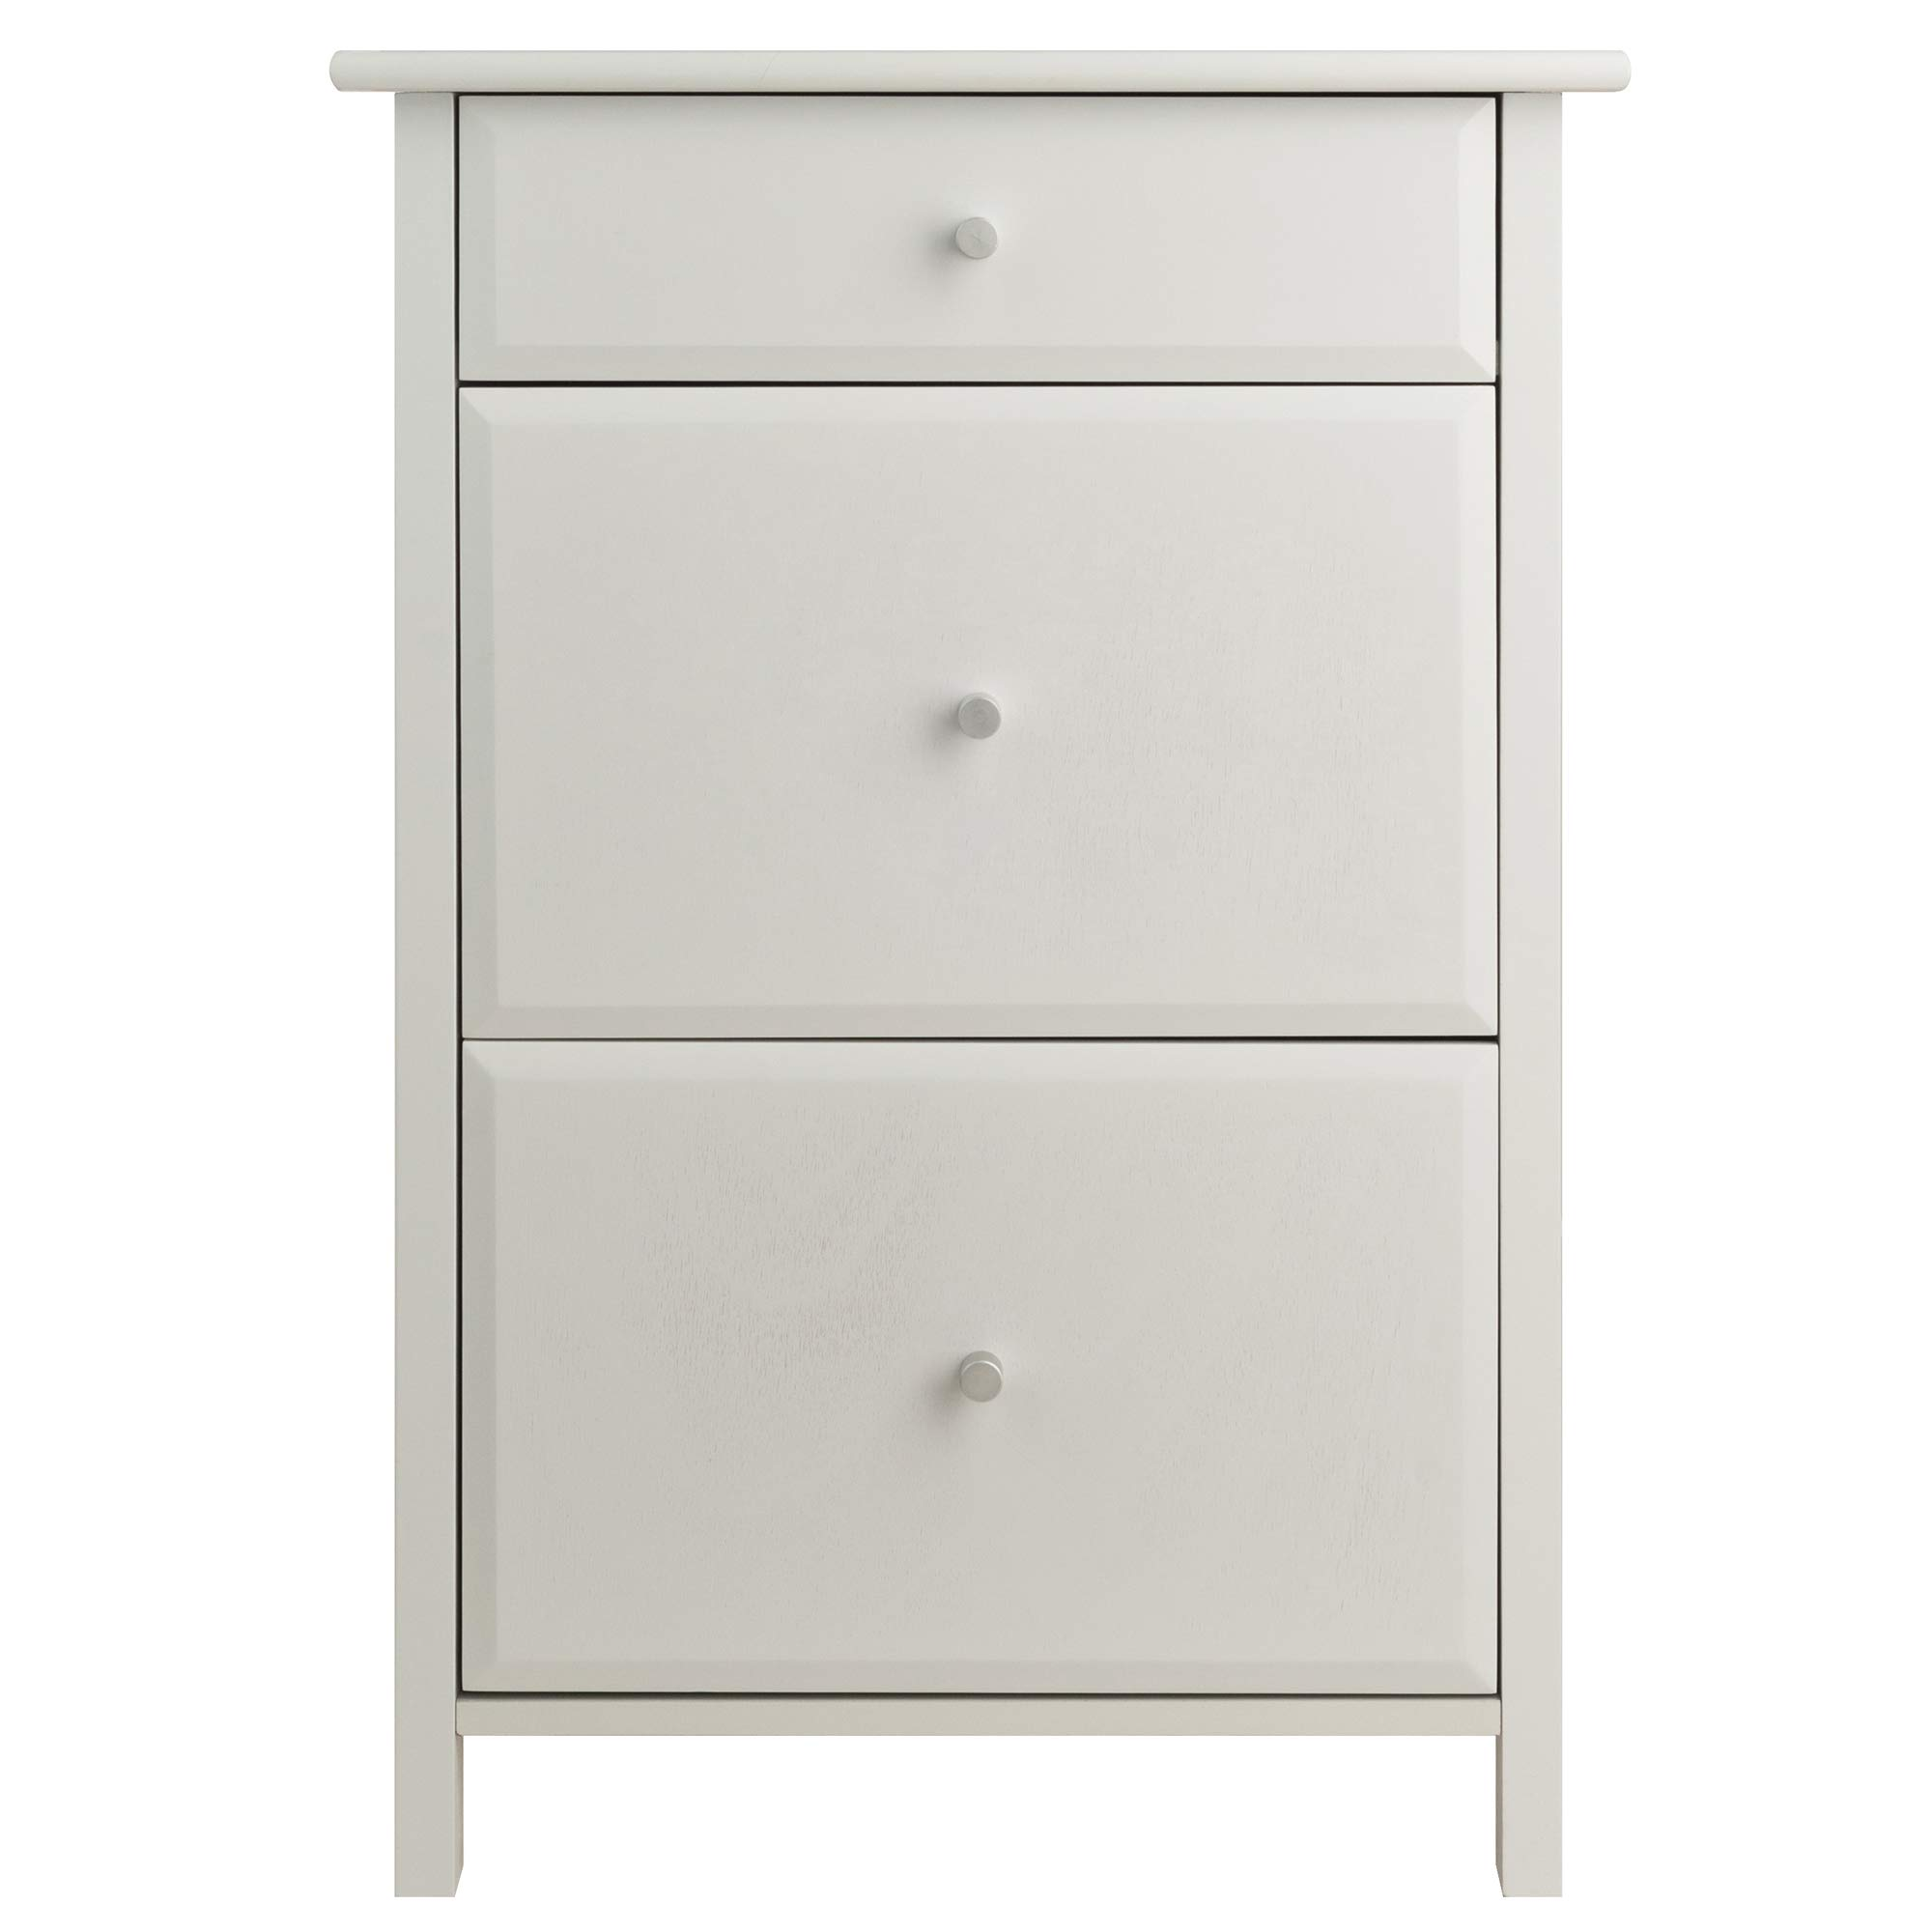 Winsome Wood 10321 Delta File Cabinet White Home Office, by Winsome Wood (Image #4)